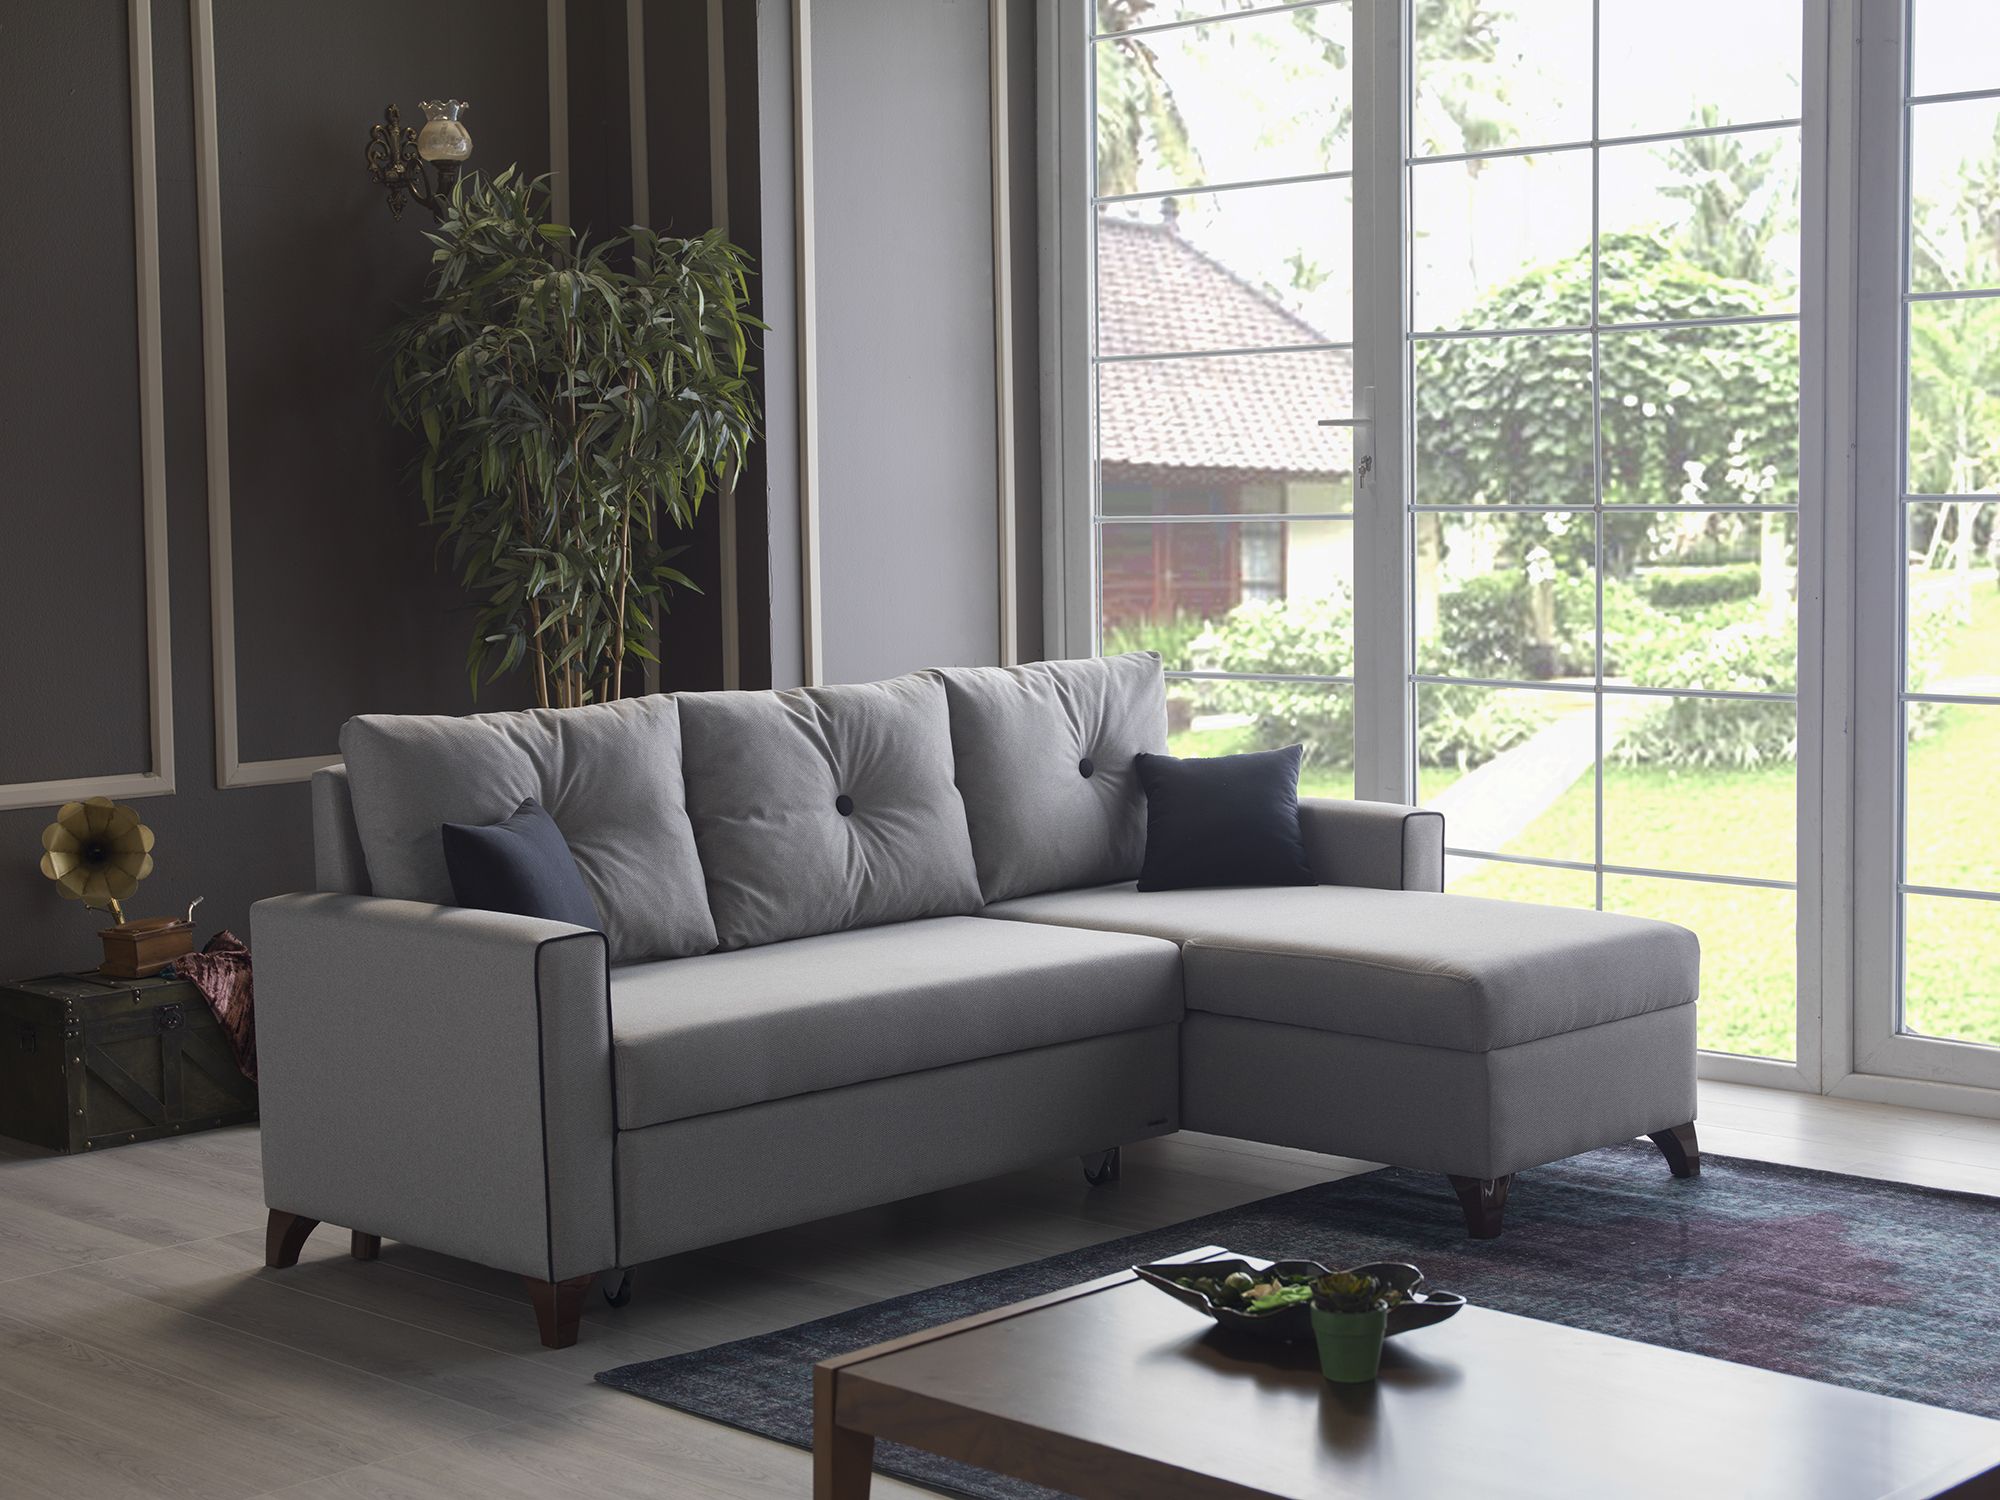 Lyon Oyem Gray Sectional Sofa Bed By Istikbal Furniture